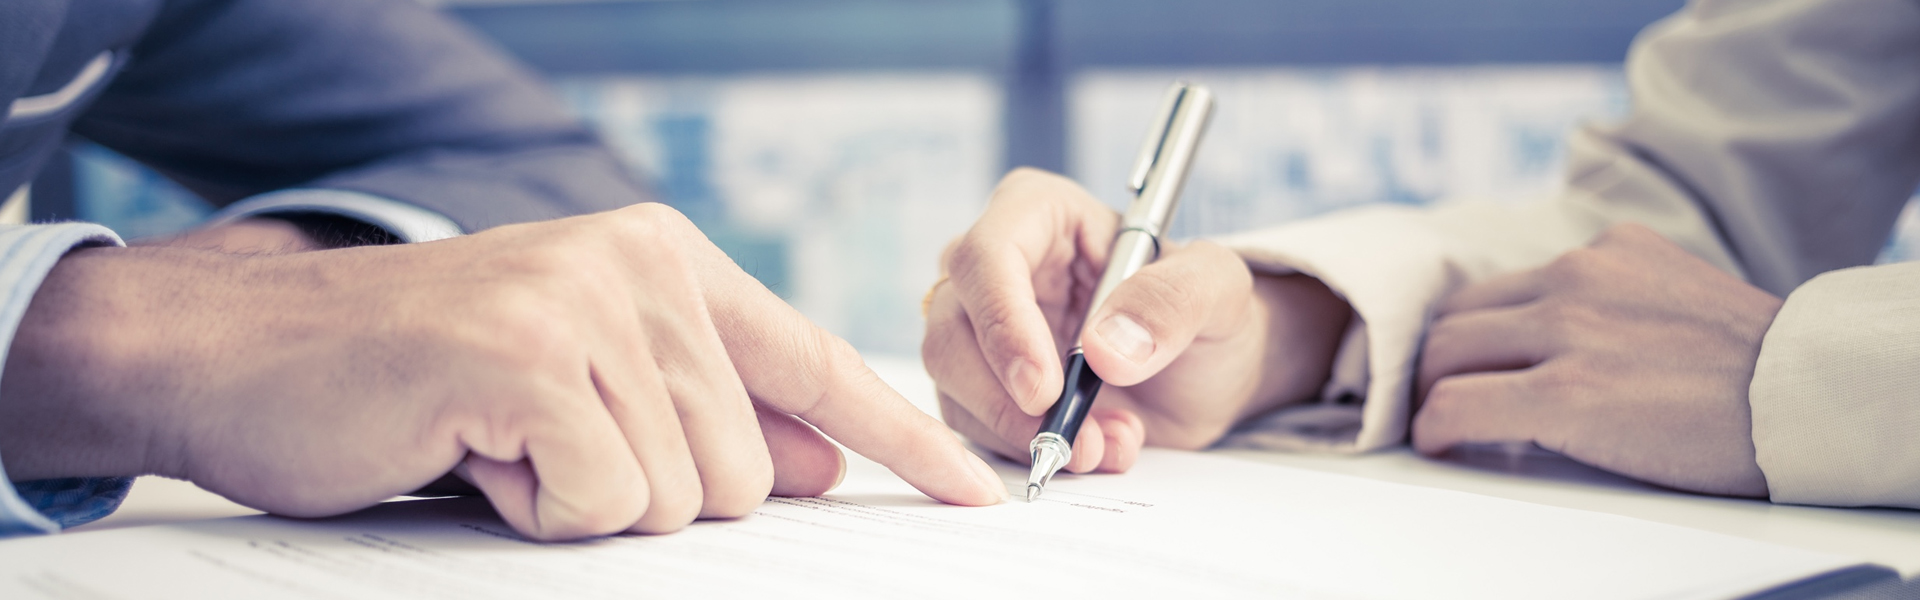 5 Things to Know About Non-Compete and Non-Solicitation Agreements in California